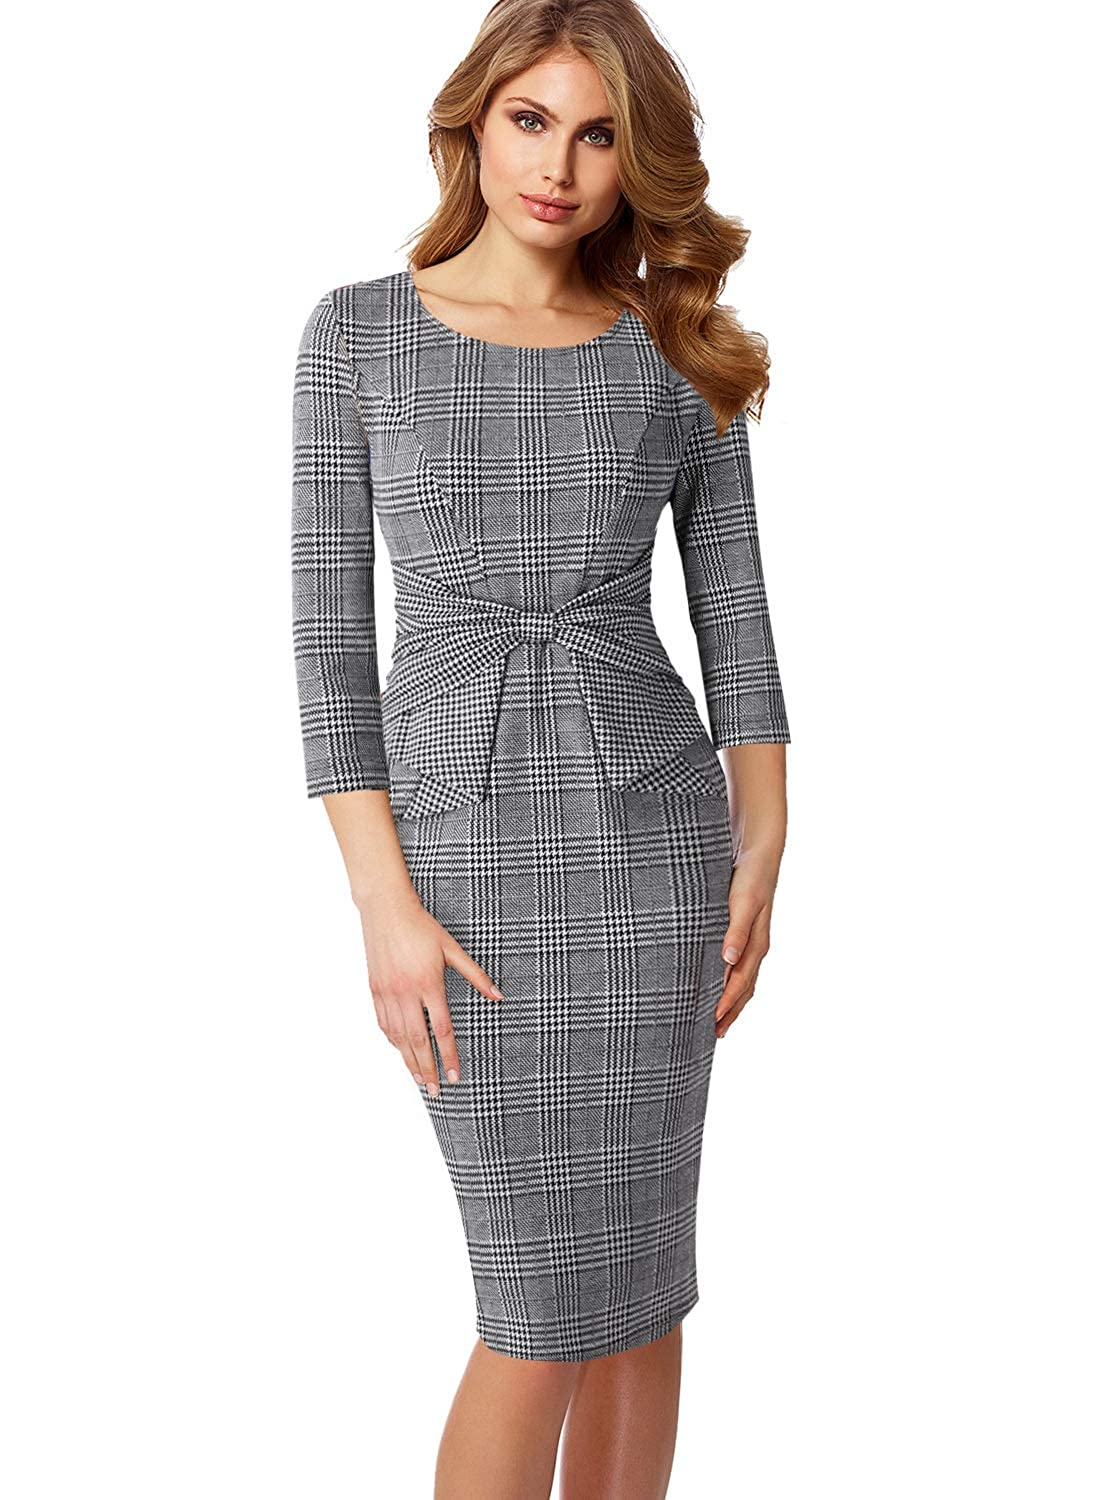 Black White Plaid 3 4 Sleeve VFSHOW Womens Pleated Bow Wear to Work Business Office Church Sheath Dress